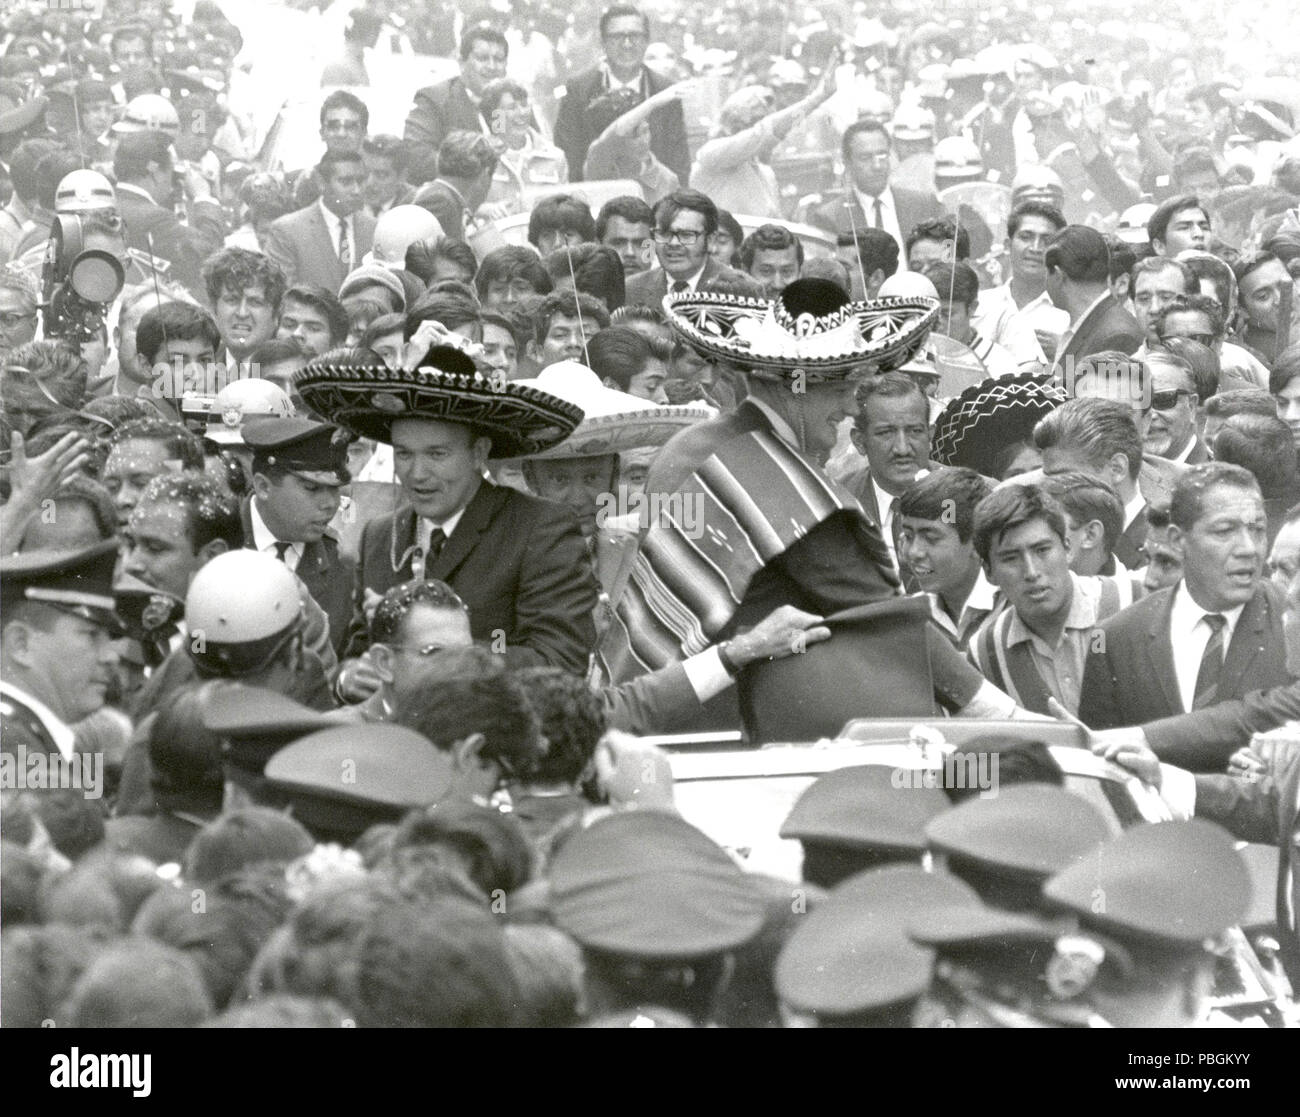 The Apollo 11 astronauts, Neil A. Armstrong, Edwin E. Aldrin, Jr., and Michael Collins, wearing sombreros and ponchos, are swarmed by thousands in Mexico City as their motorcade is slowed by the enthusiastic crowd. - Stock Image